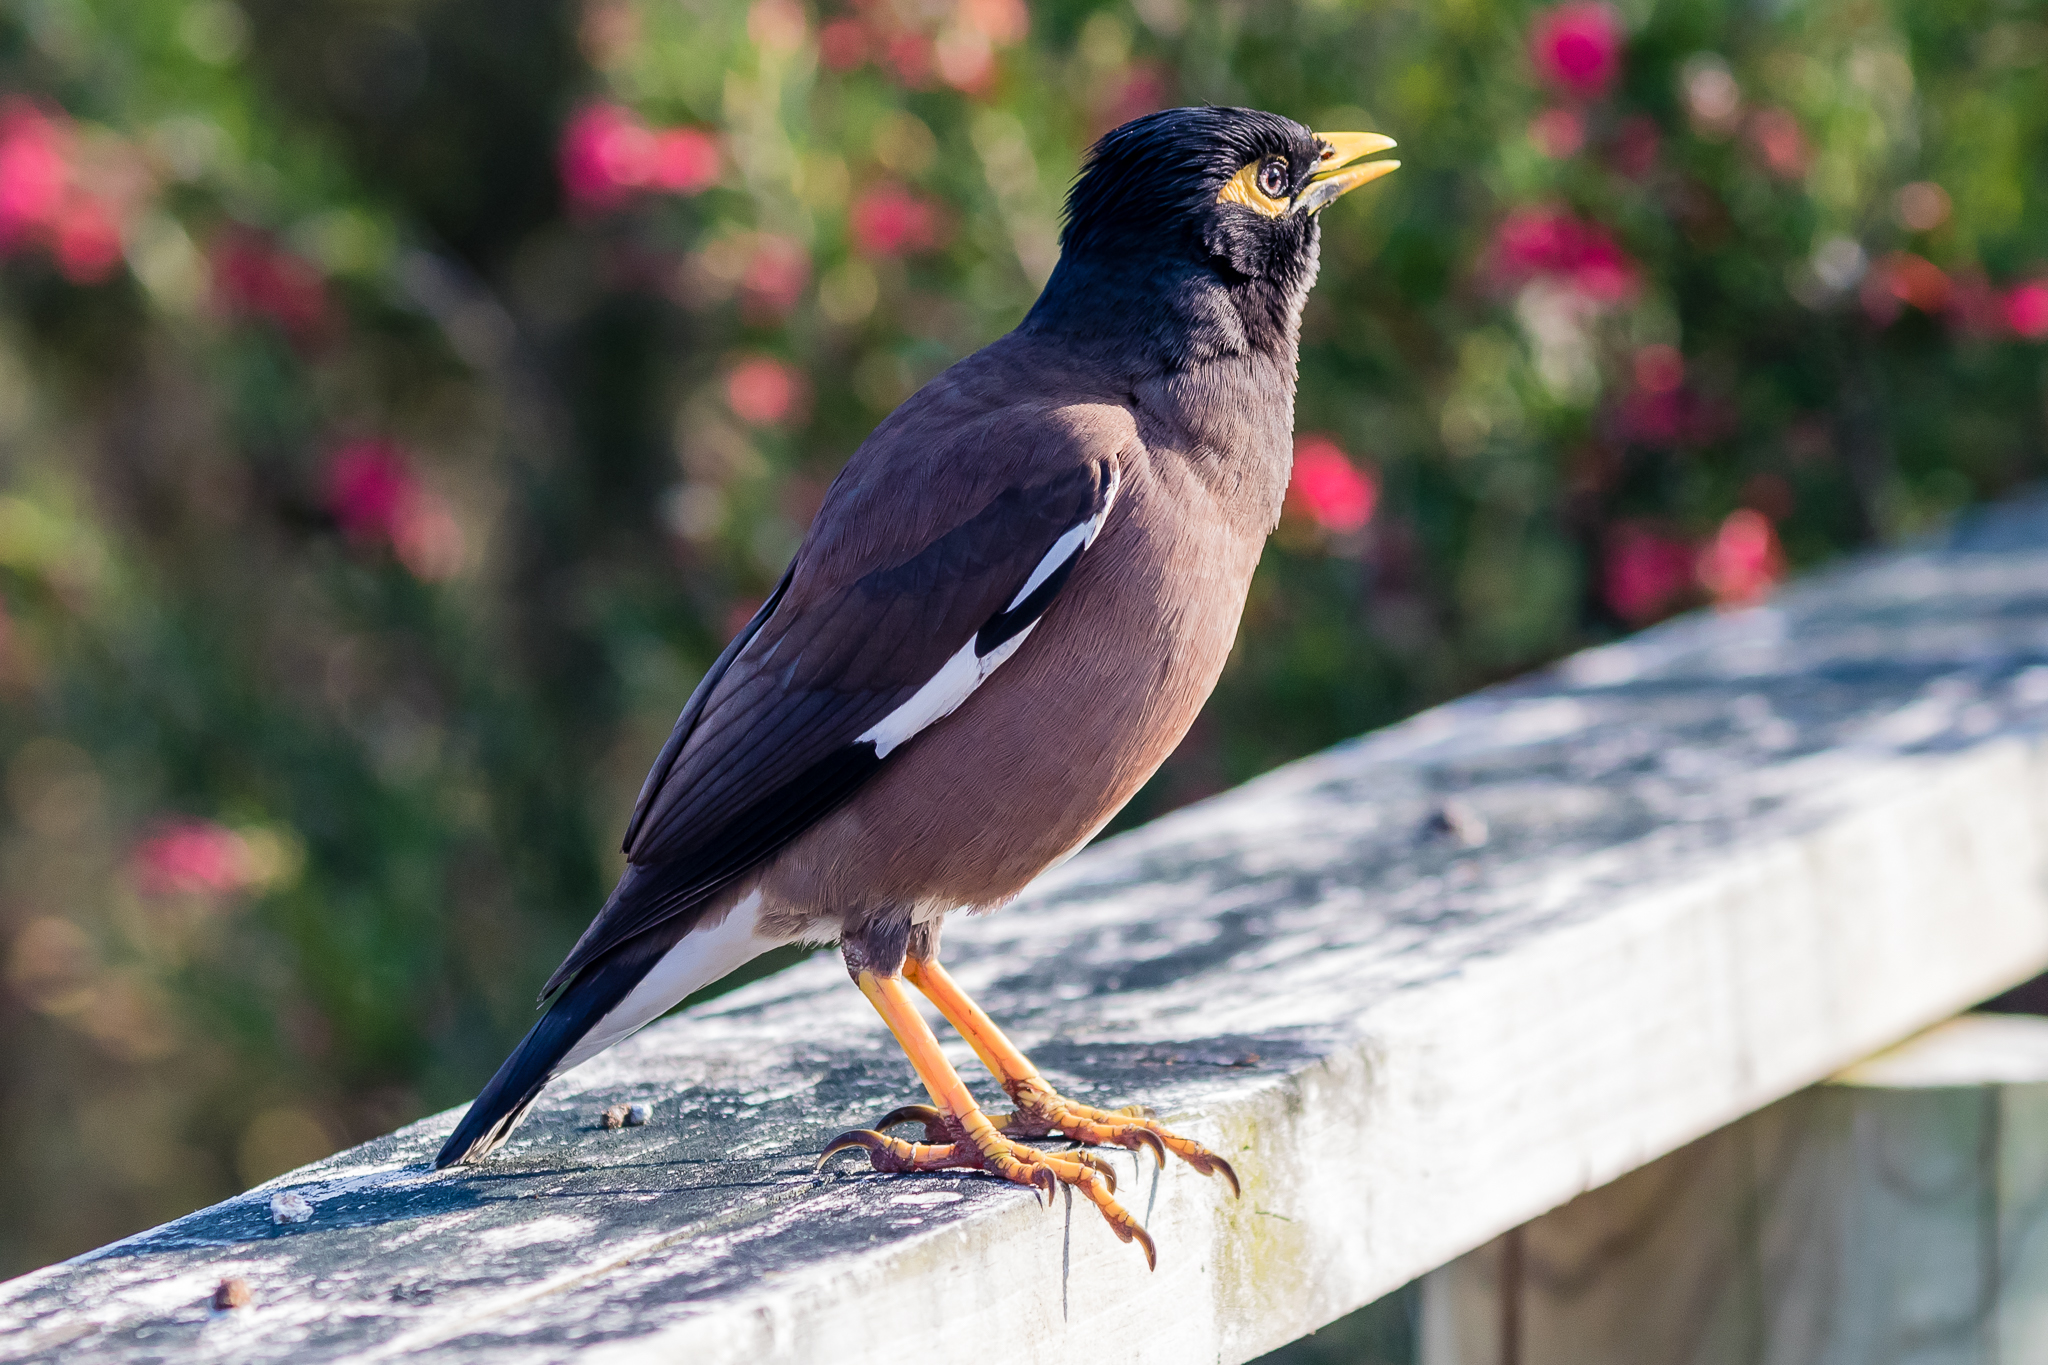 The Common Myna takes eighth place. Often regarded as a pest, the Common Myna is losing out to its Australian cousin, the Noisy Miner.